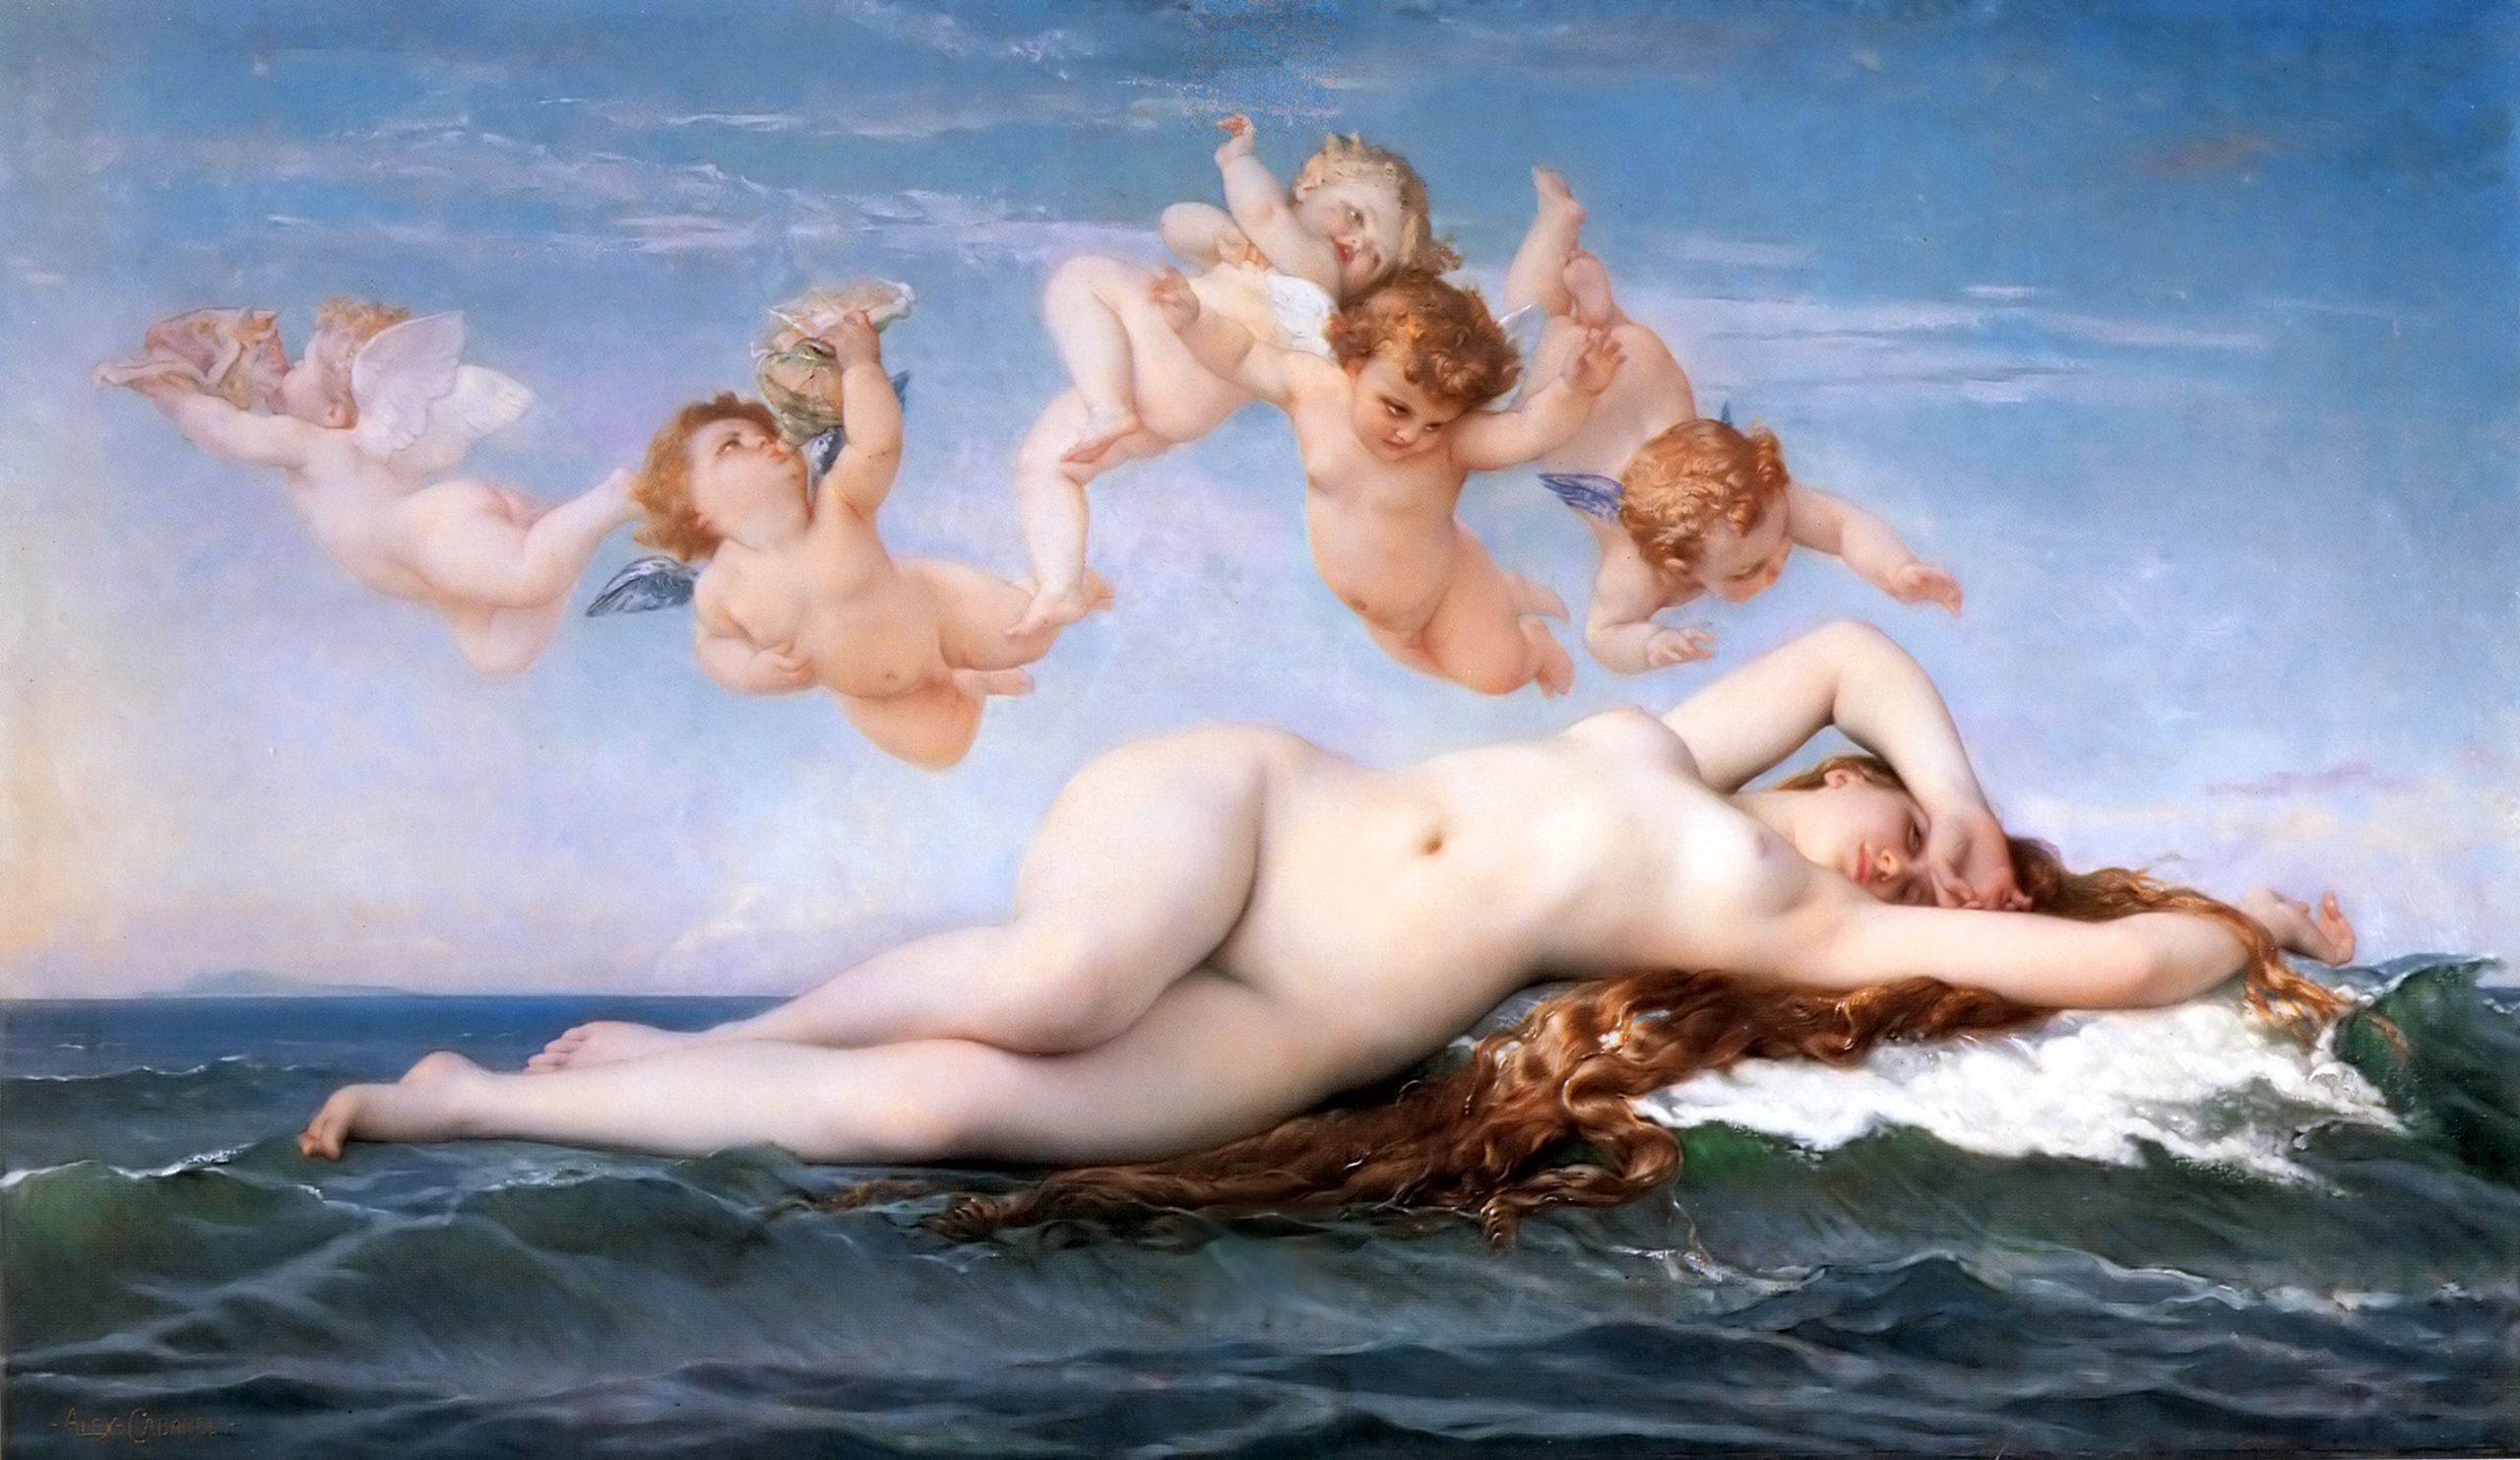 1863 Alexandre Cabanel - The Birth of Venus